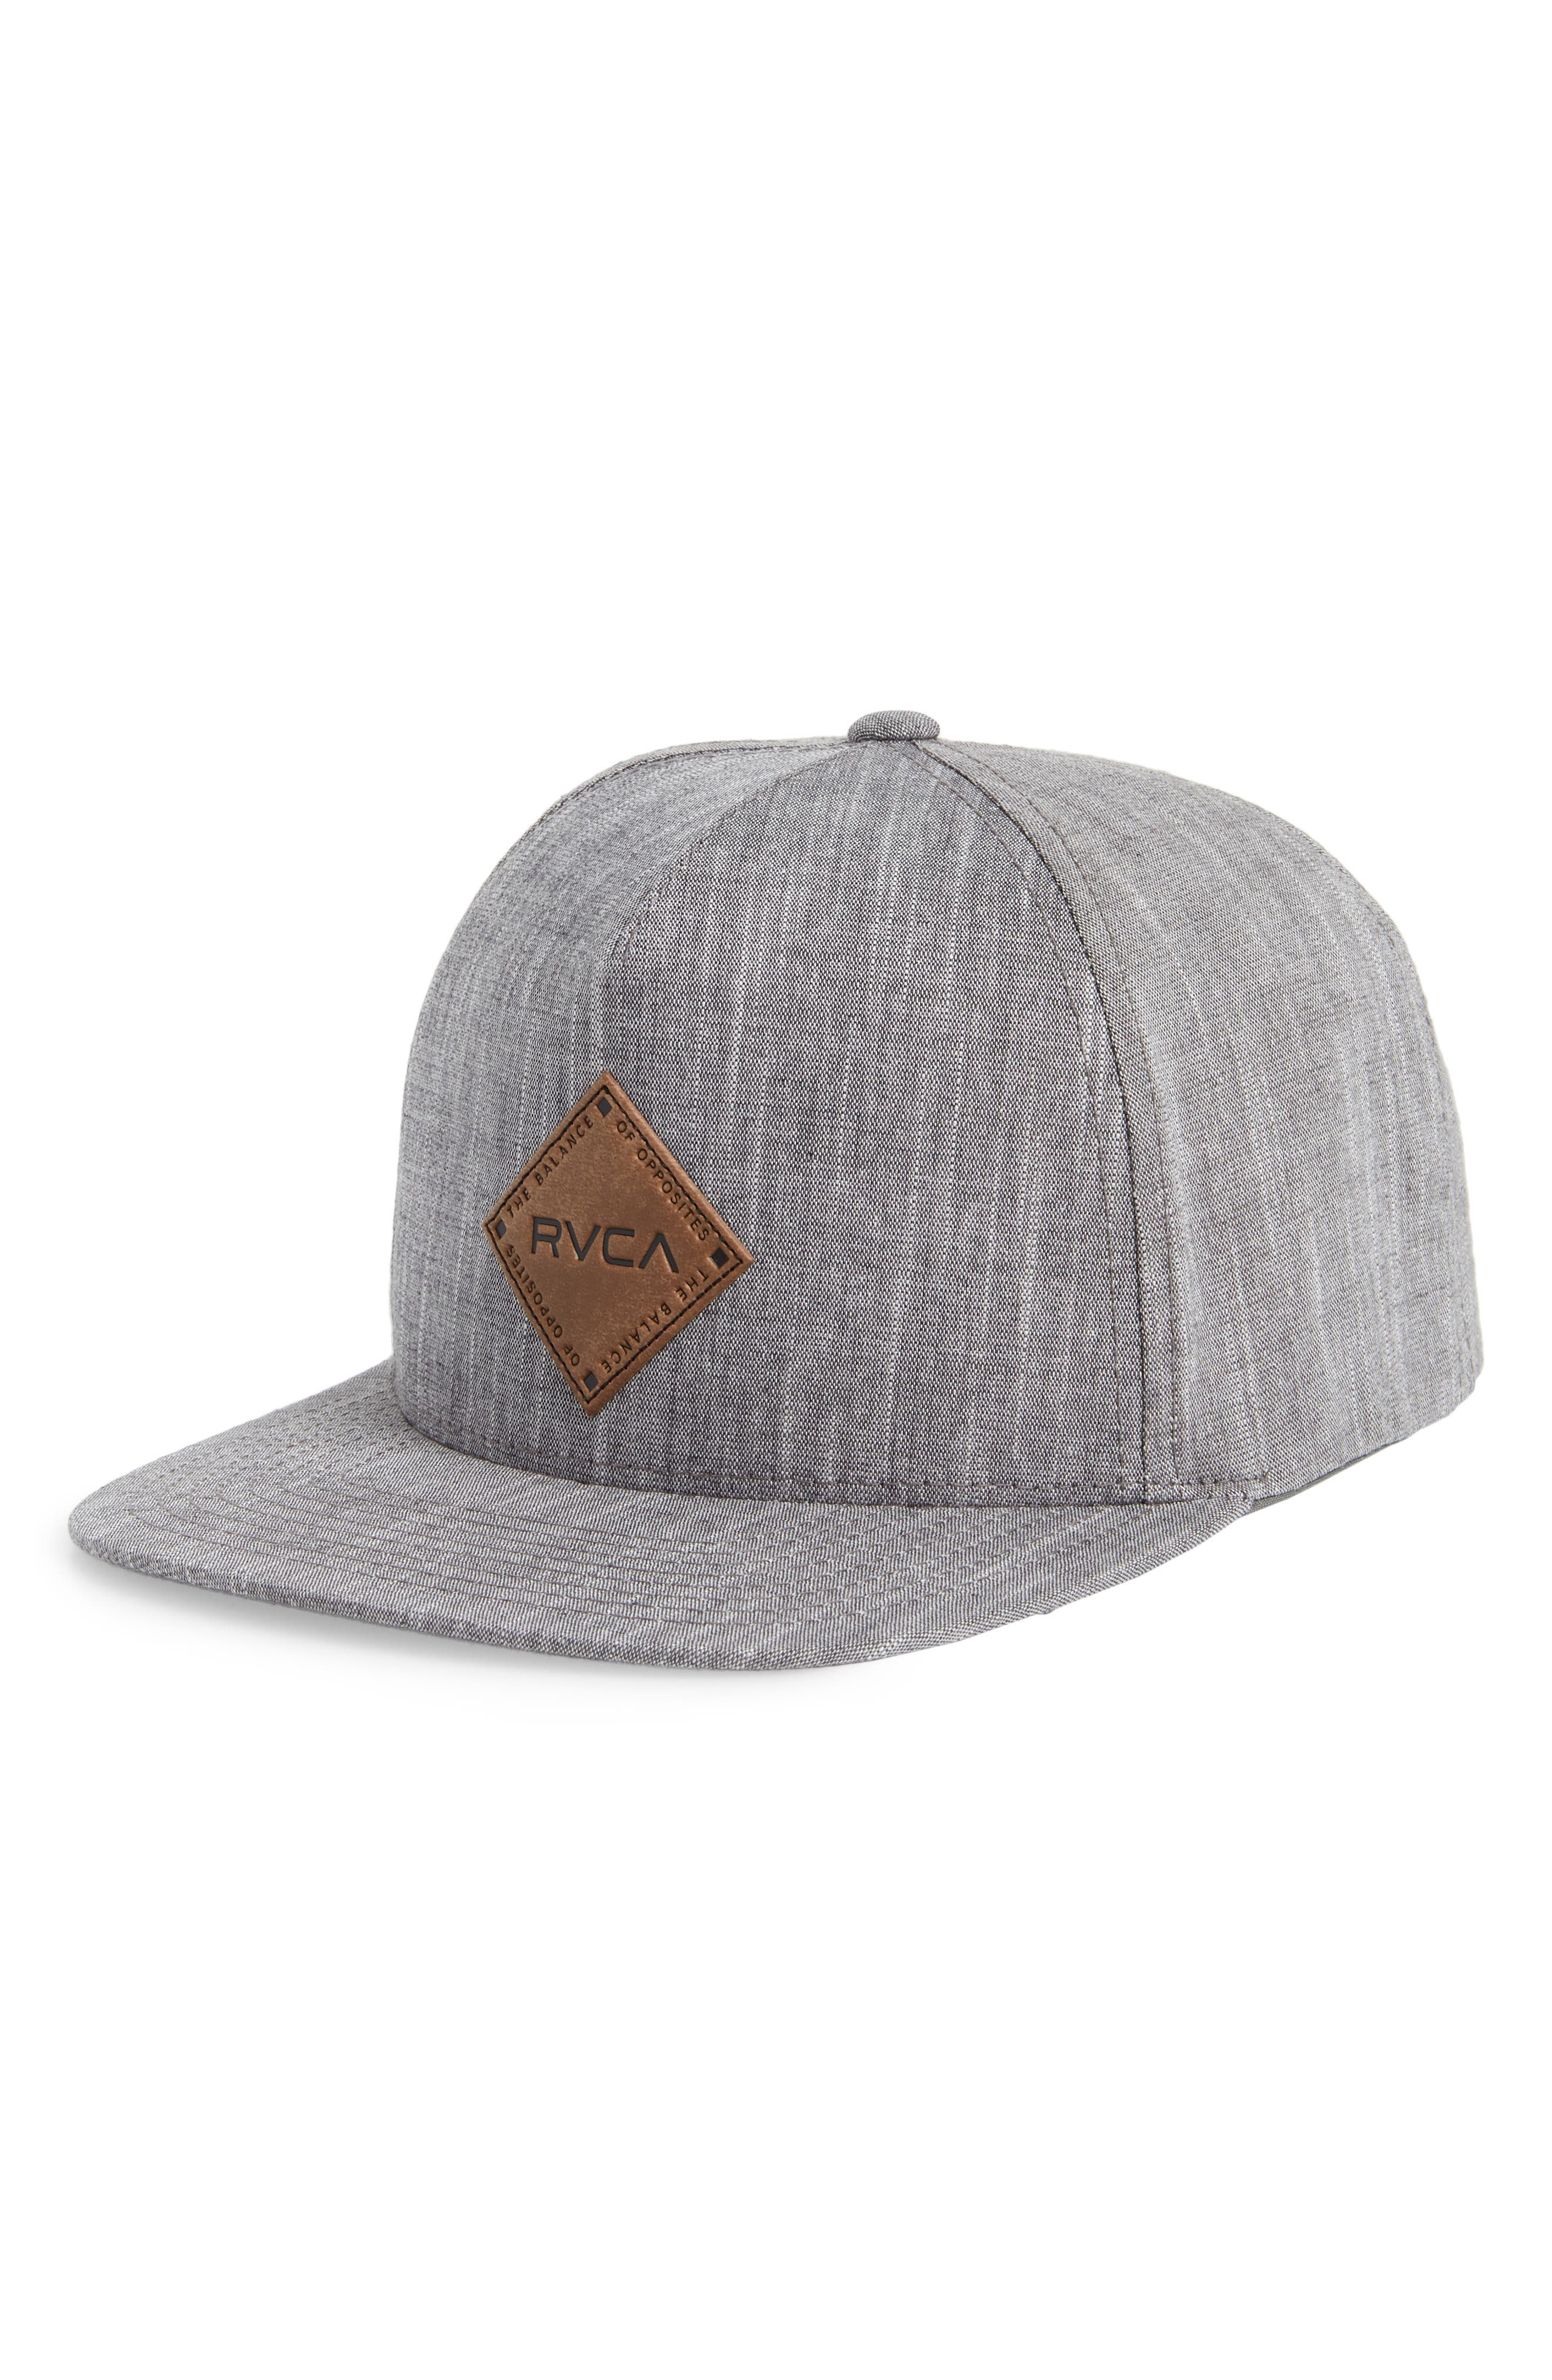 Finley Snapback Cap,                             Main thumbnail 1, color,                             Black Heather